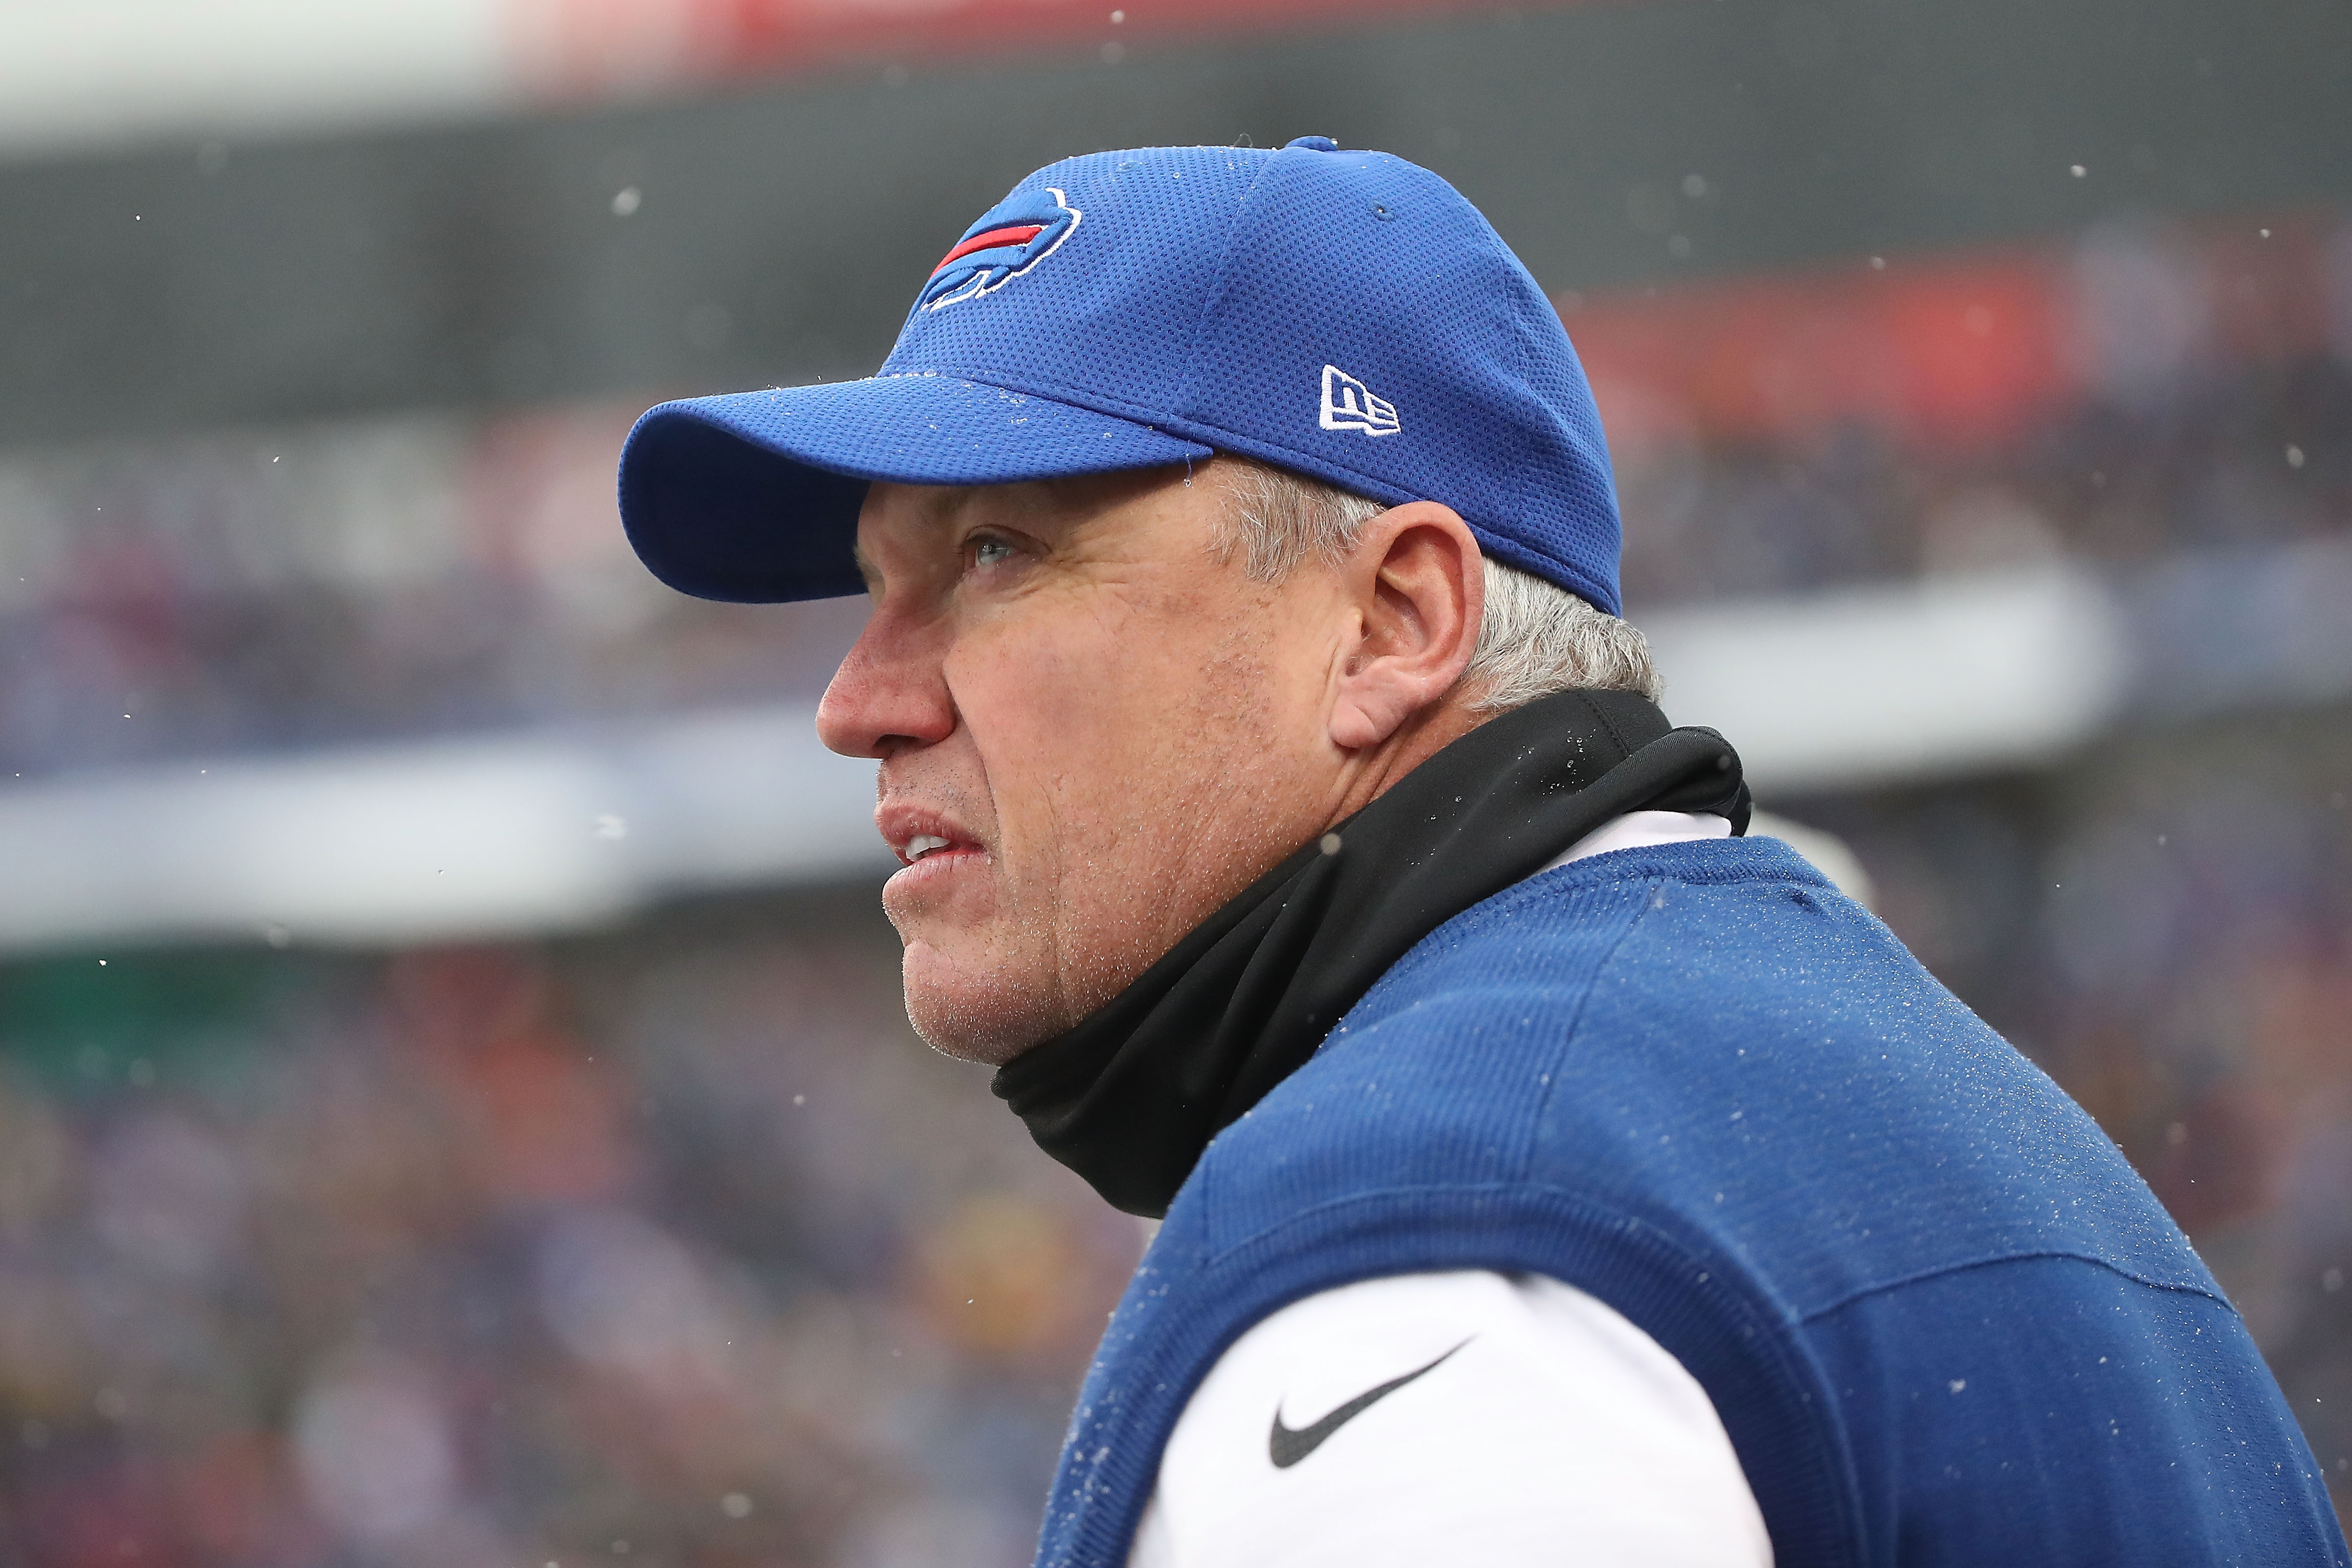 ORCHARD PARK, NY - DECEMBER 11:  Head coach Rex Ryan of the Buffalo Bills during the first half against the Pittsburgh Steelers at New Era Field on December 11, 2016 in Orchard Park, New York.  (Photo by Tom Szczerbowski/Getty Images)